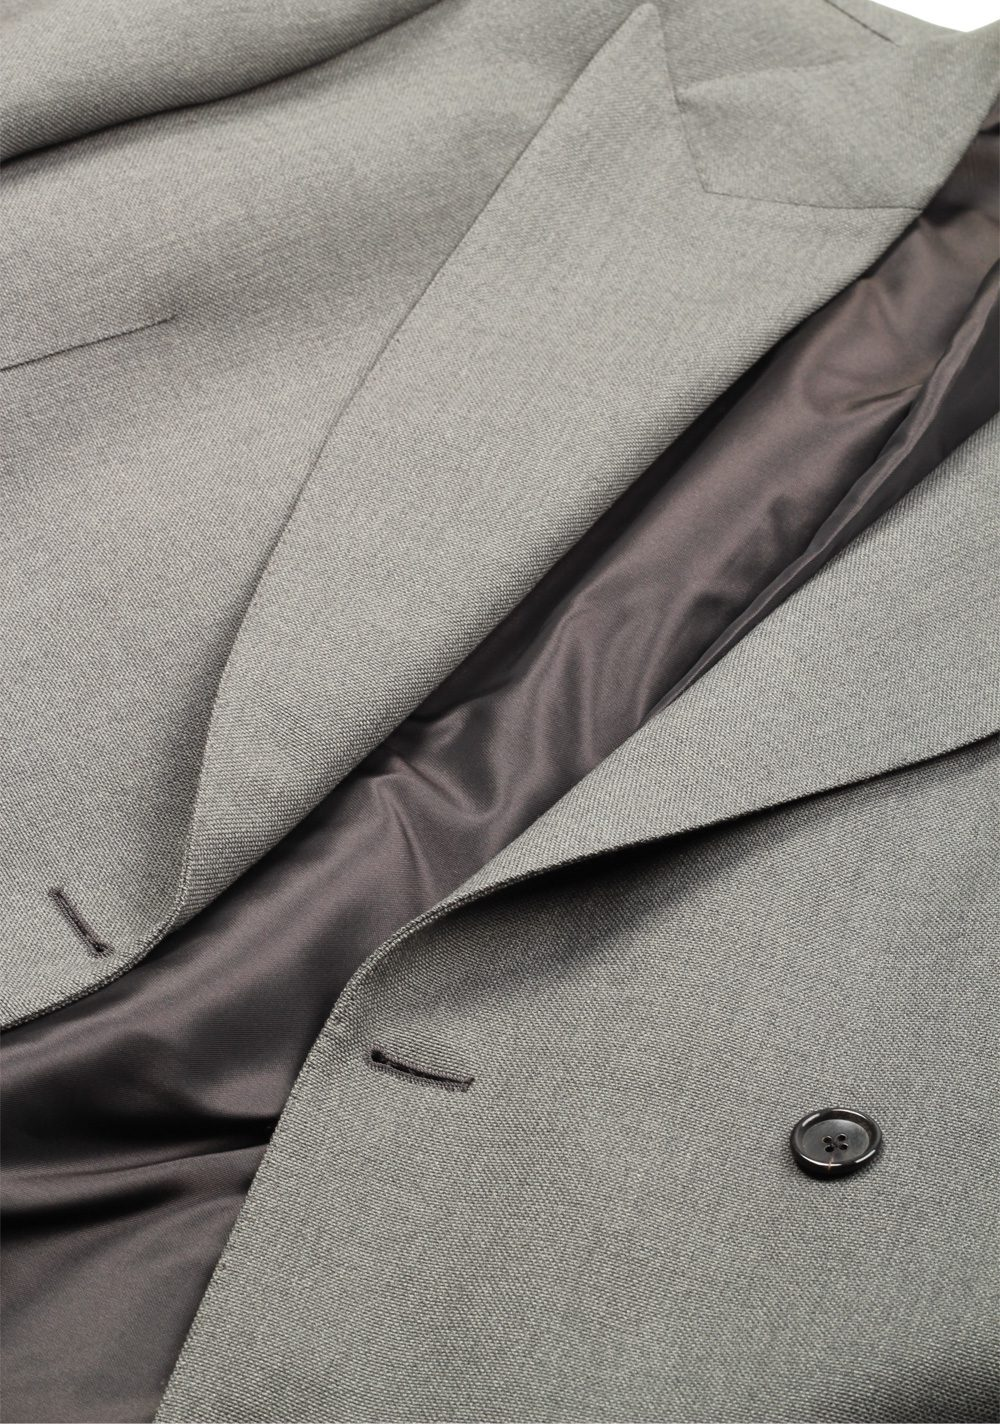 TOM FORD Shelton Double Breasted Gray Sport Coat Size 46 / 36R In Wool   Costume Limité